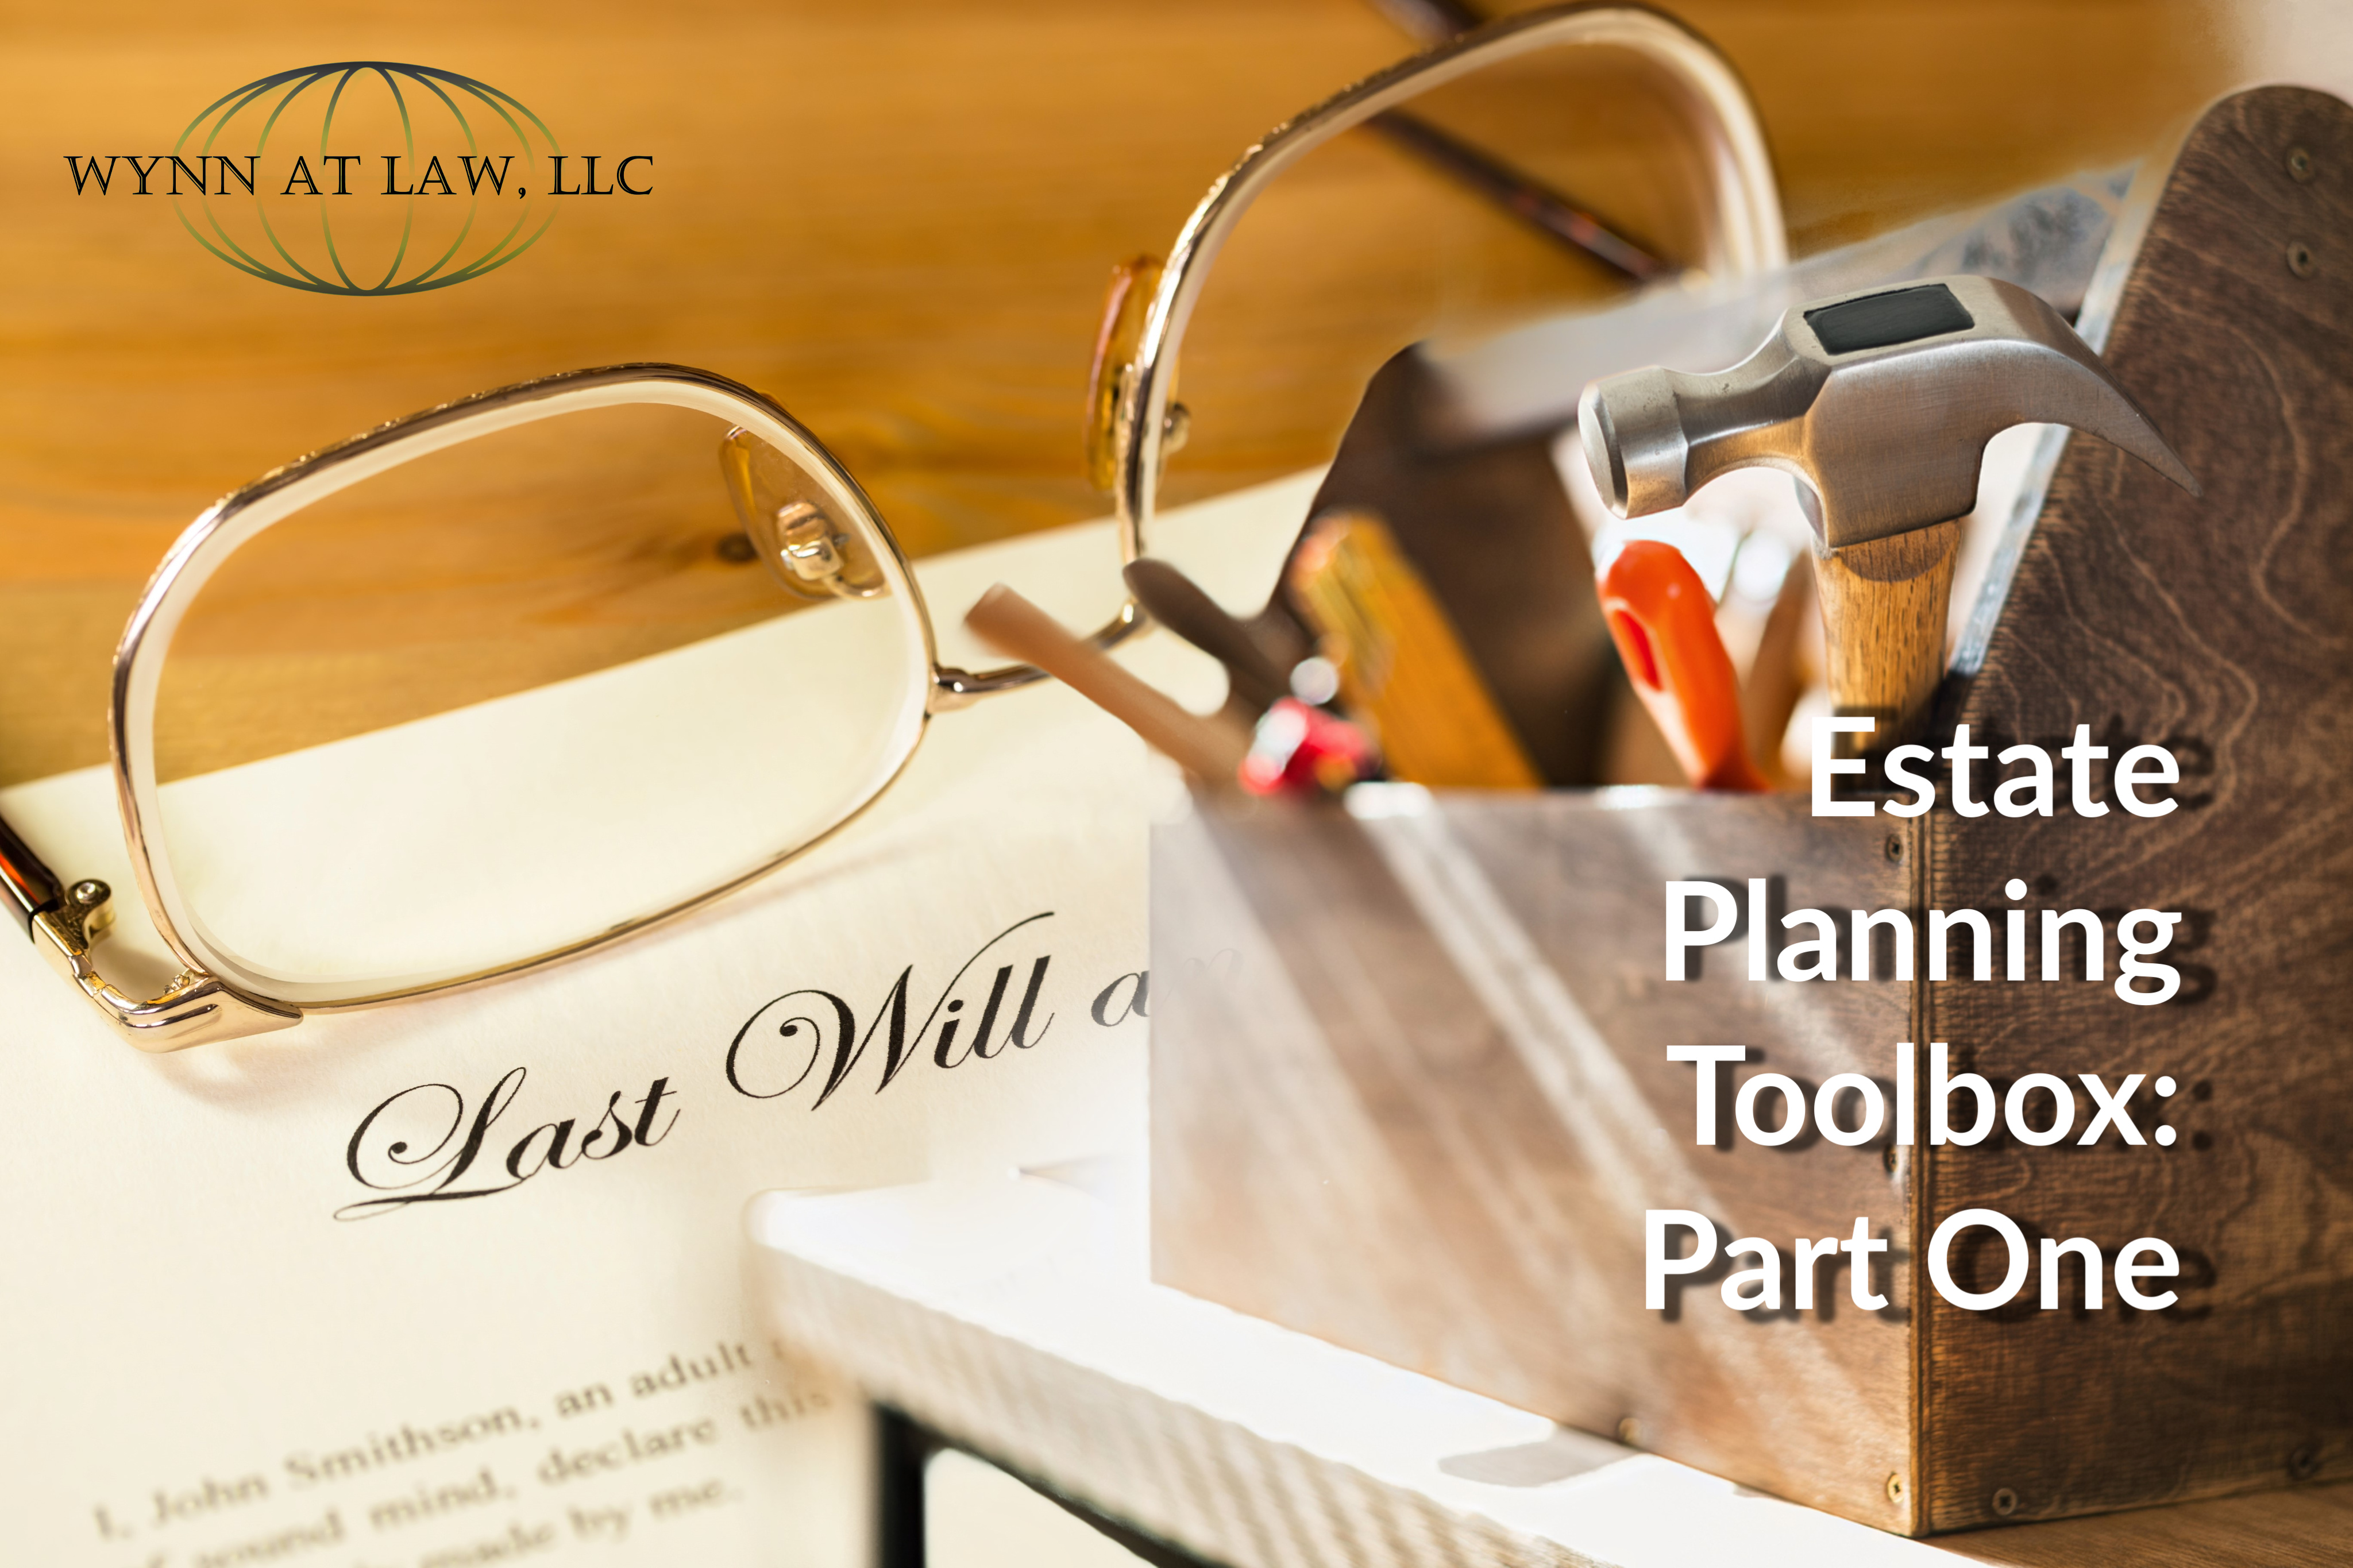 wisconsin estate planning toolbox